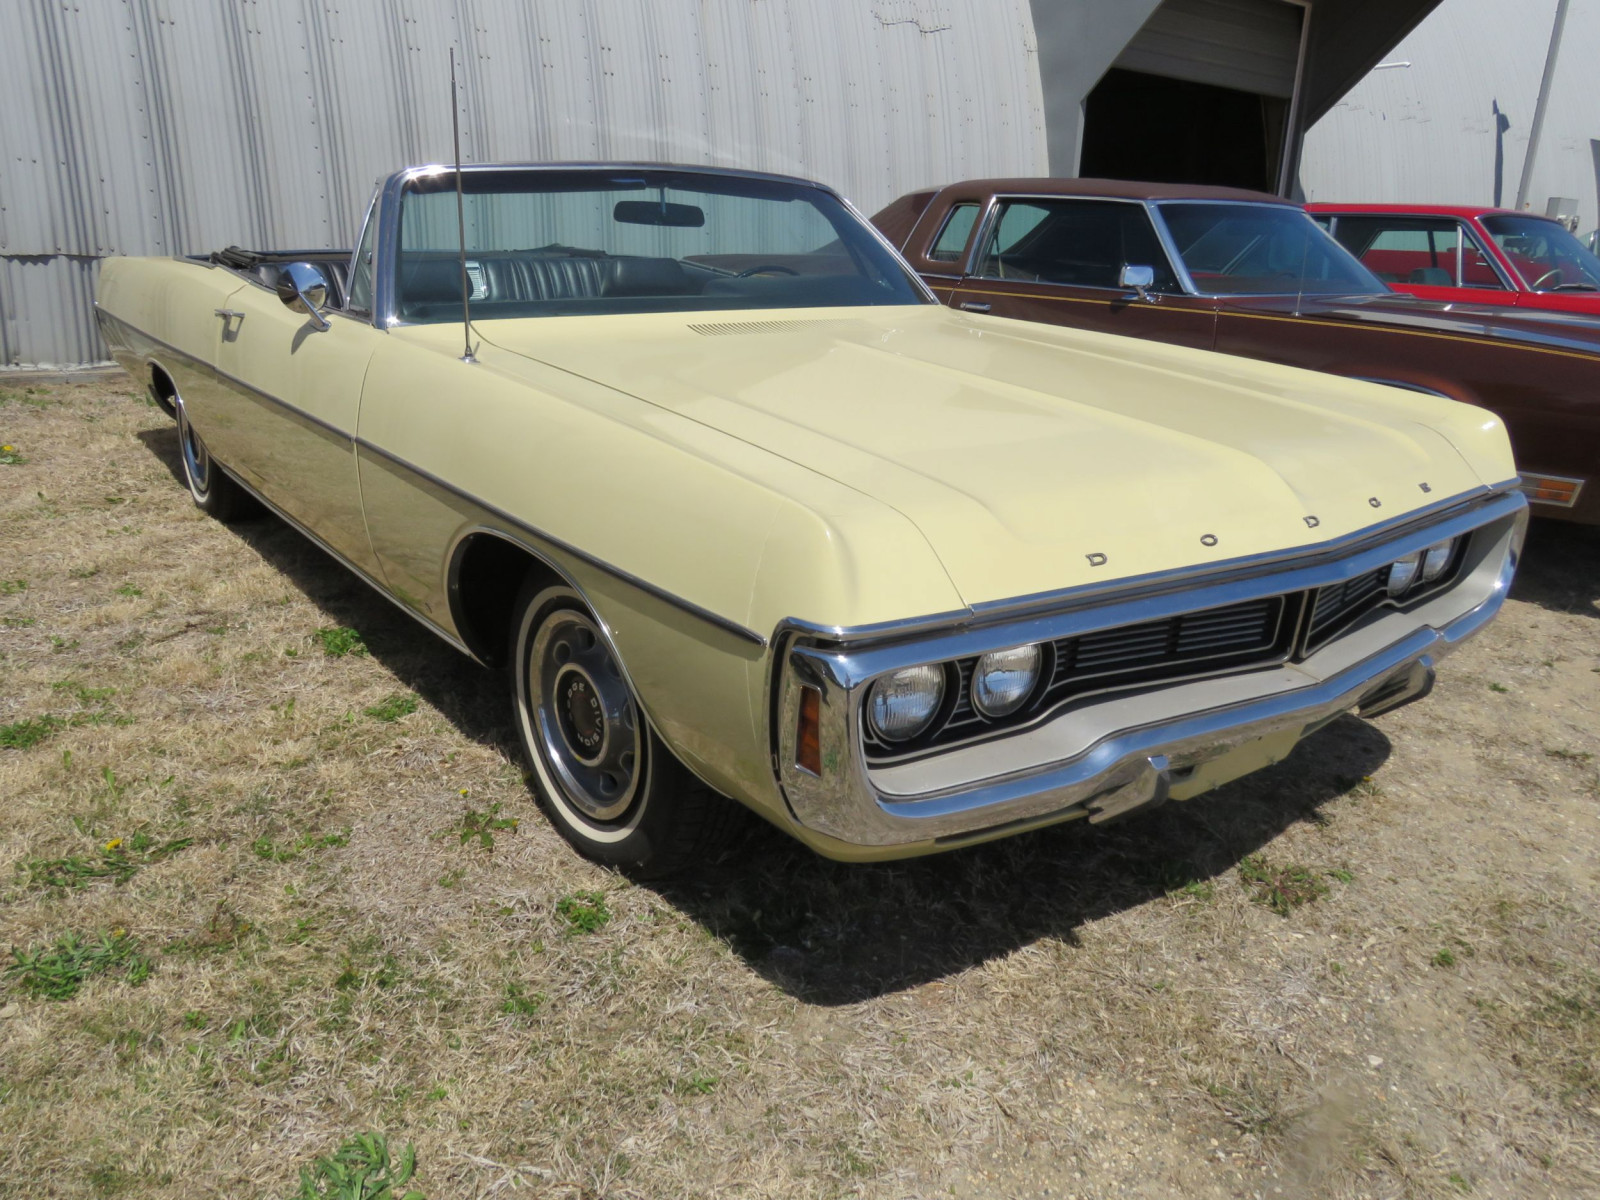 Rare 1970 Dodge Polara Convertible - Image 3